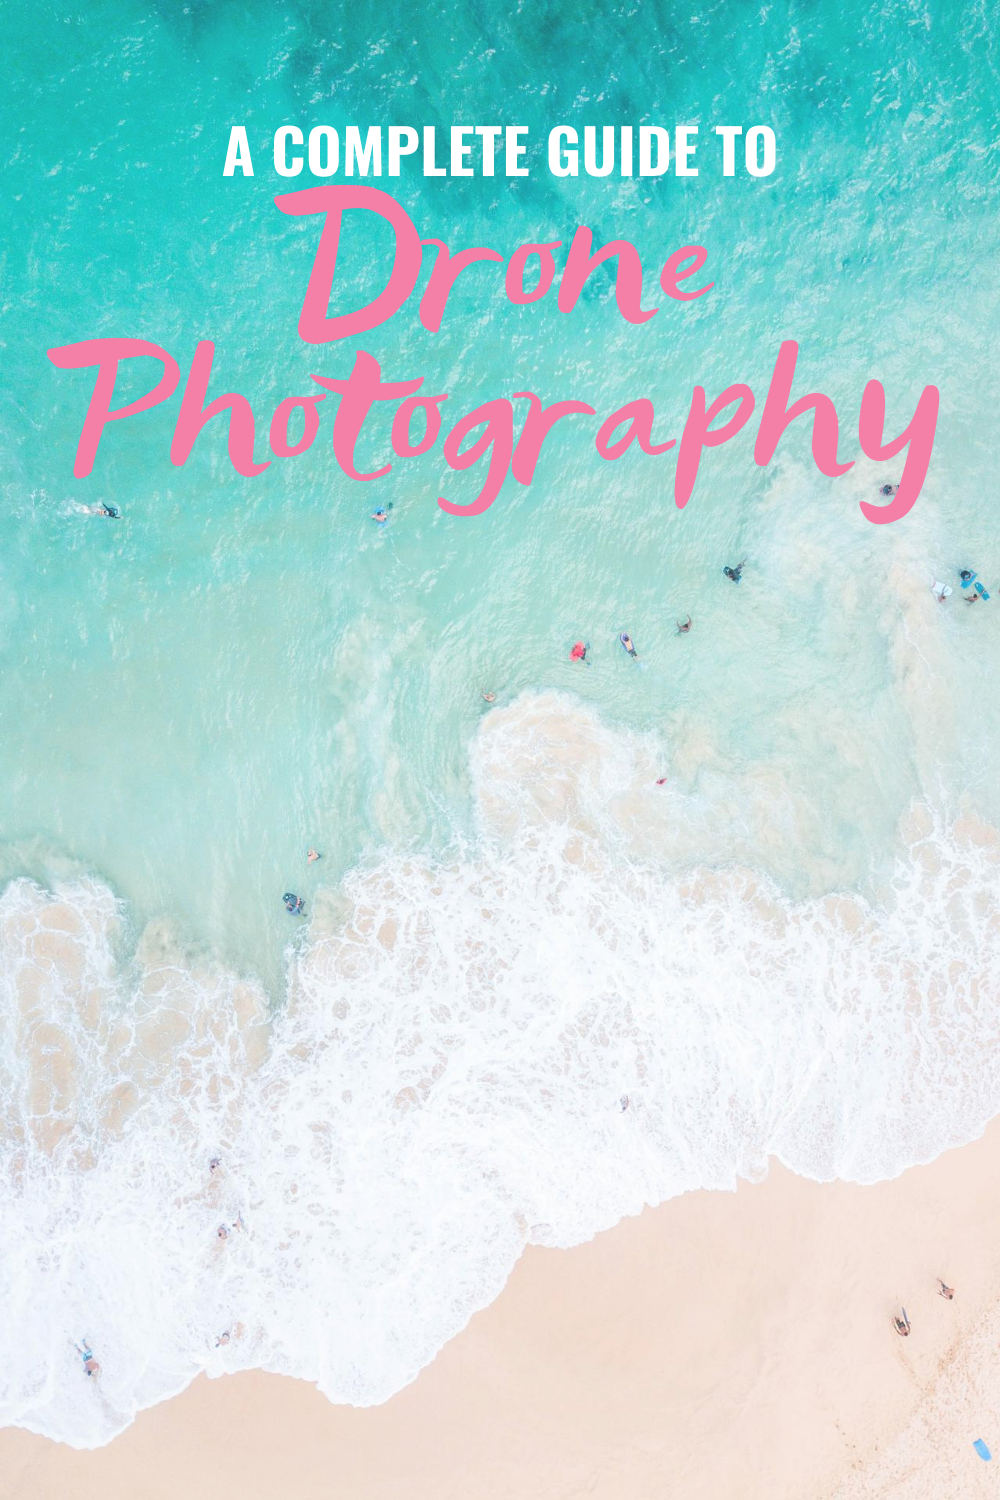 WHAT YOU NEED TO KNOW ABOUT DRONES + DRONE PHOTOGRAPHY - Looking for info on drone photography? I'm sharing all the details on our drone + aerial photography! | Drone Photography How To - Drone Photography Ideas - DJI Mavic Pro - Flying A Drone - Best Drone For Photography - Aerial Photography Drone - Hawaii Drone Photography